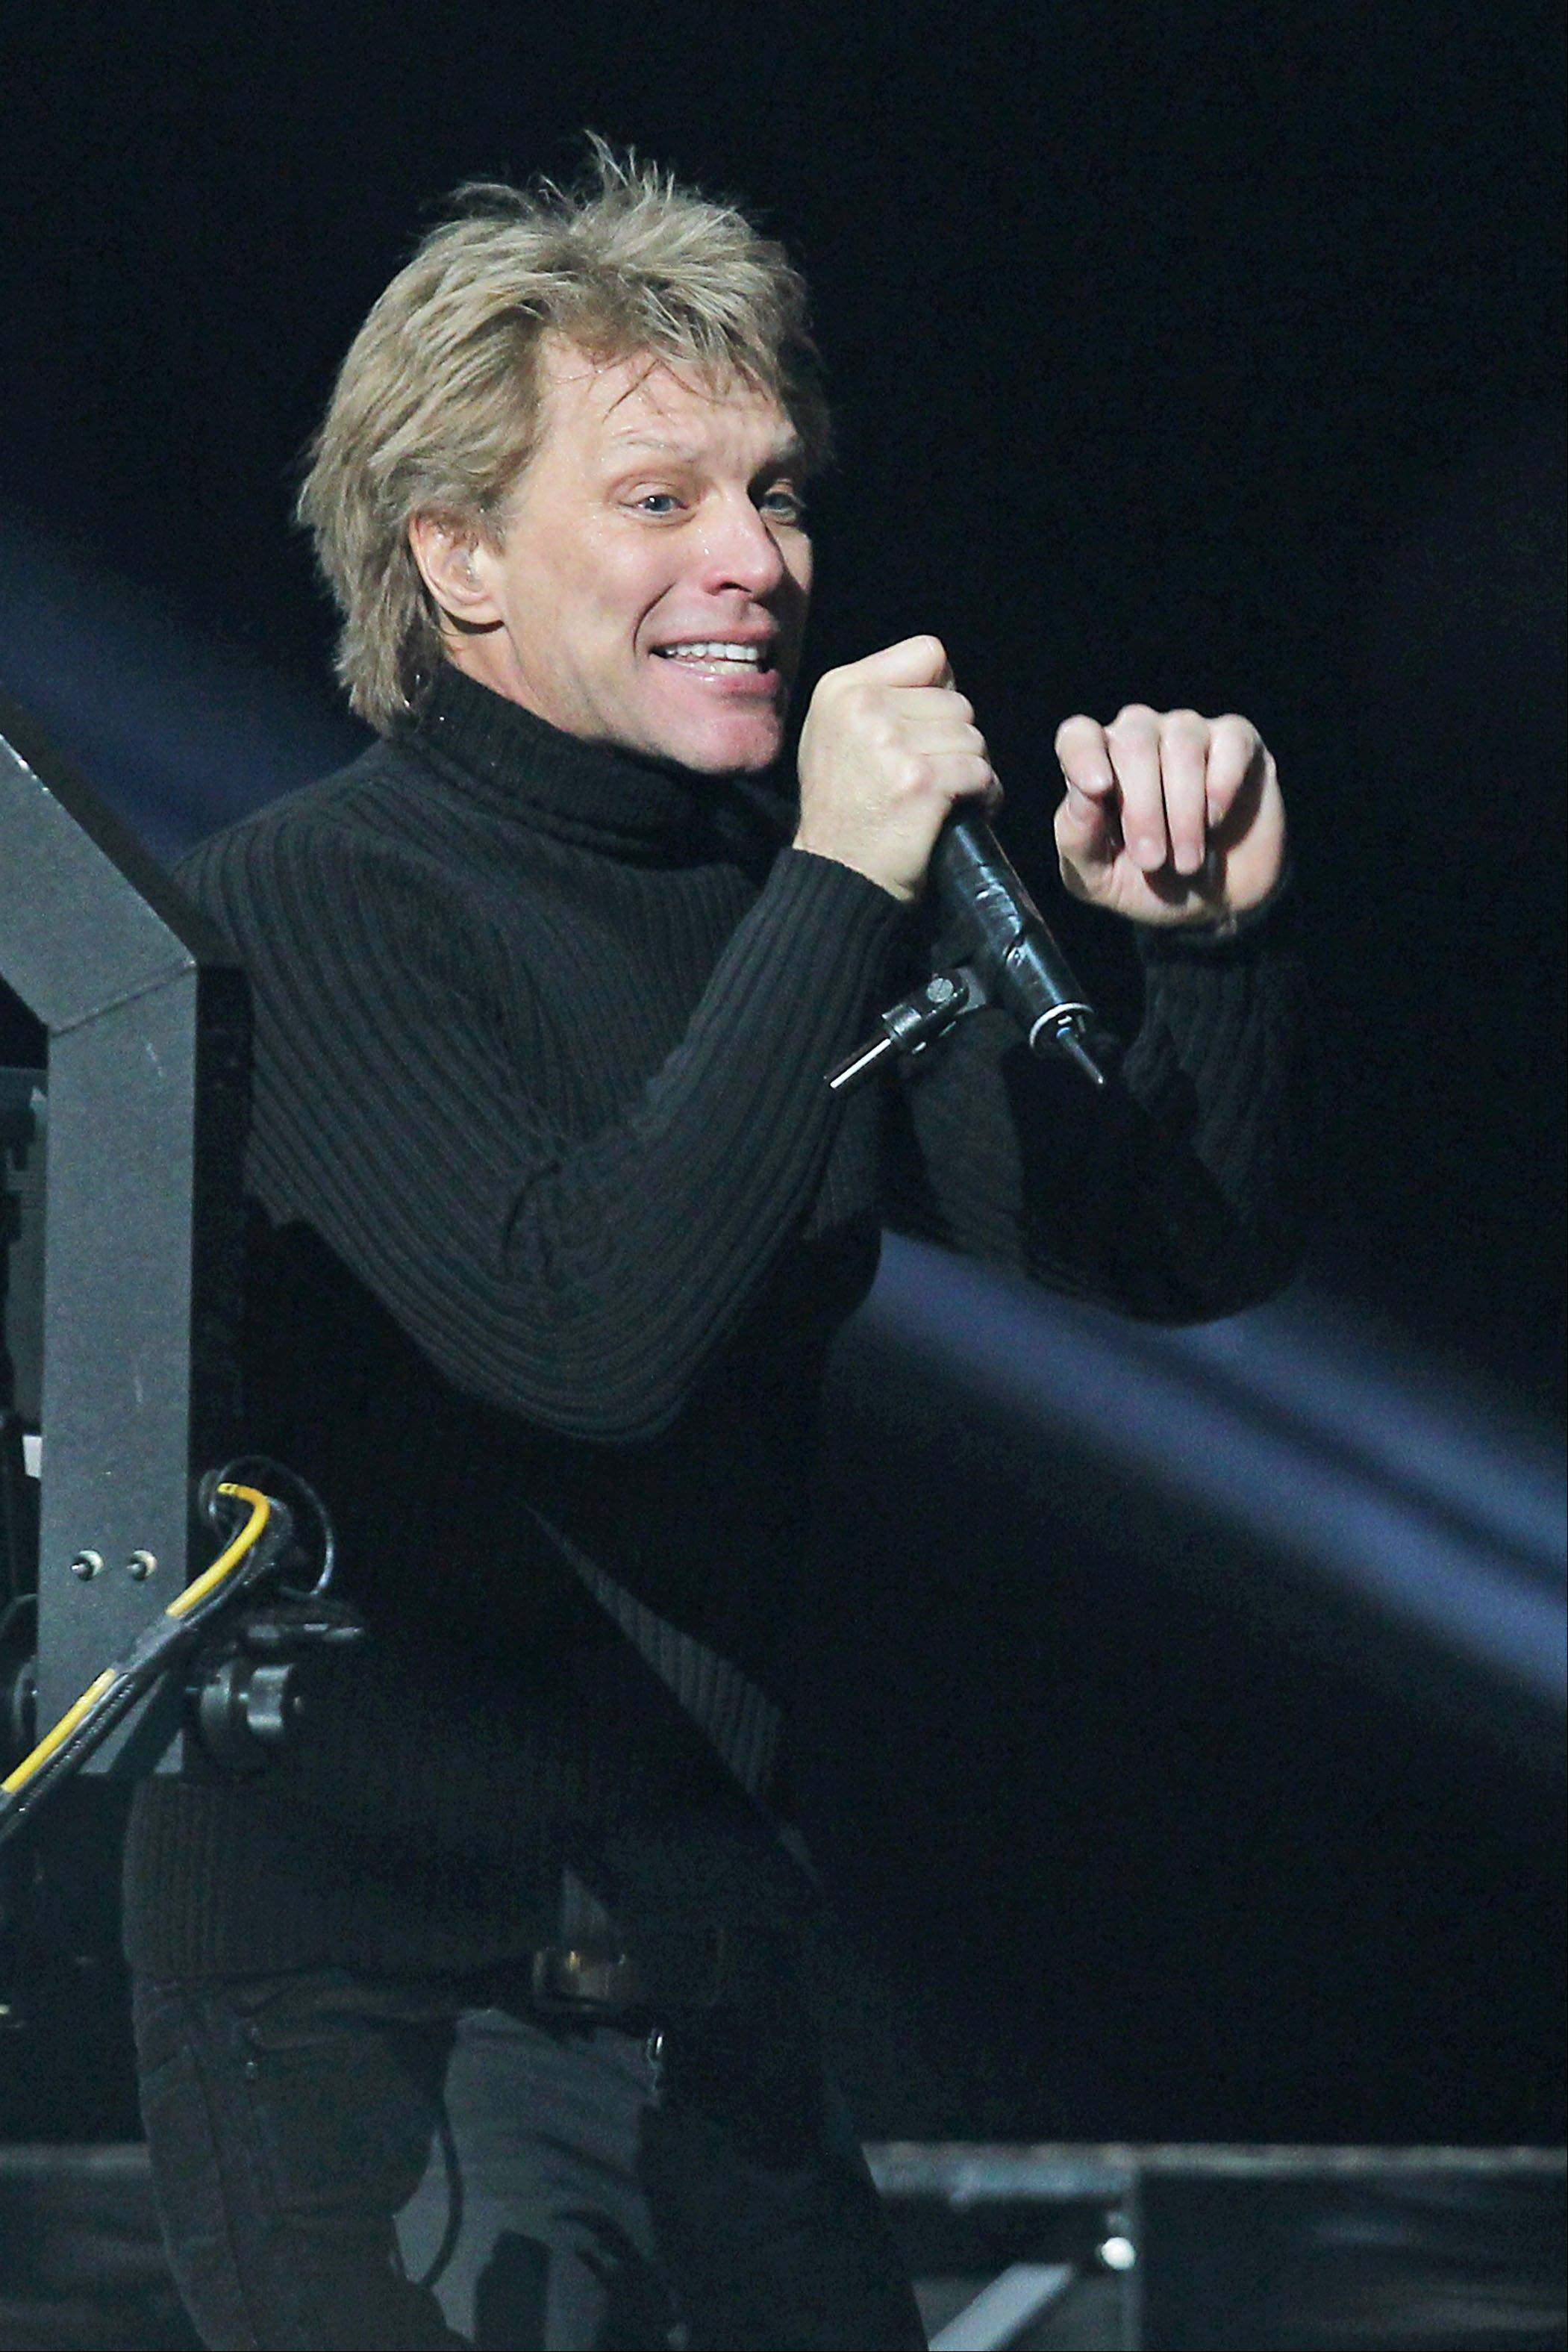 Jon Bon Jovi performs Wednesday at the 12-12-12 The Concert for Sandy Relief at Madison Square Garden in New York.